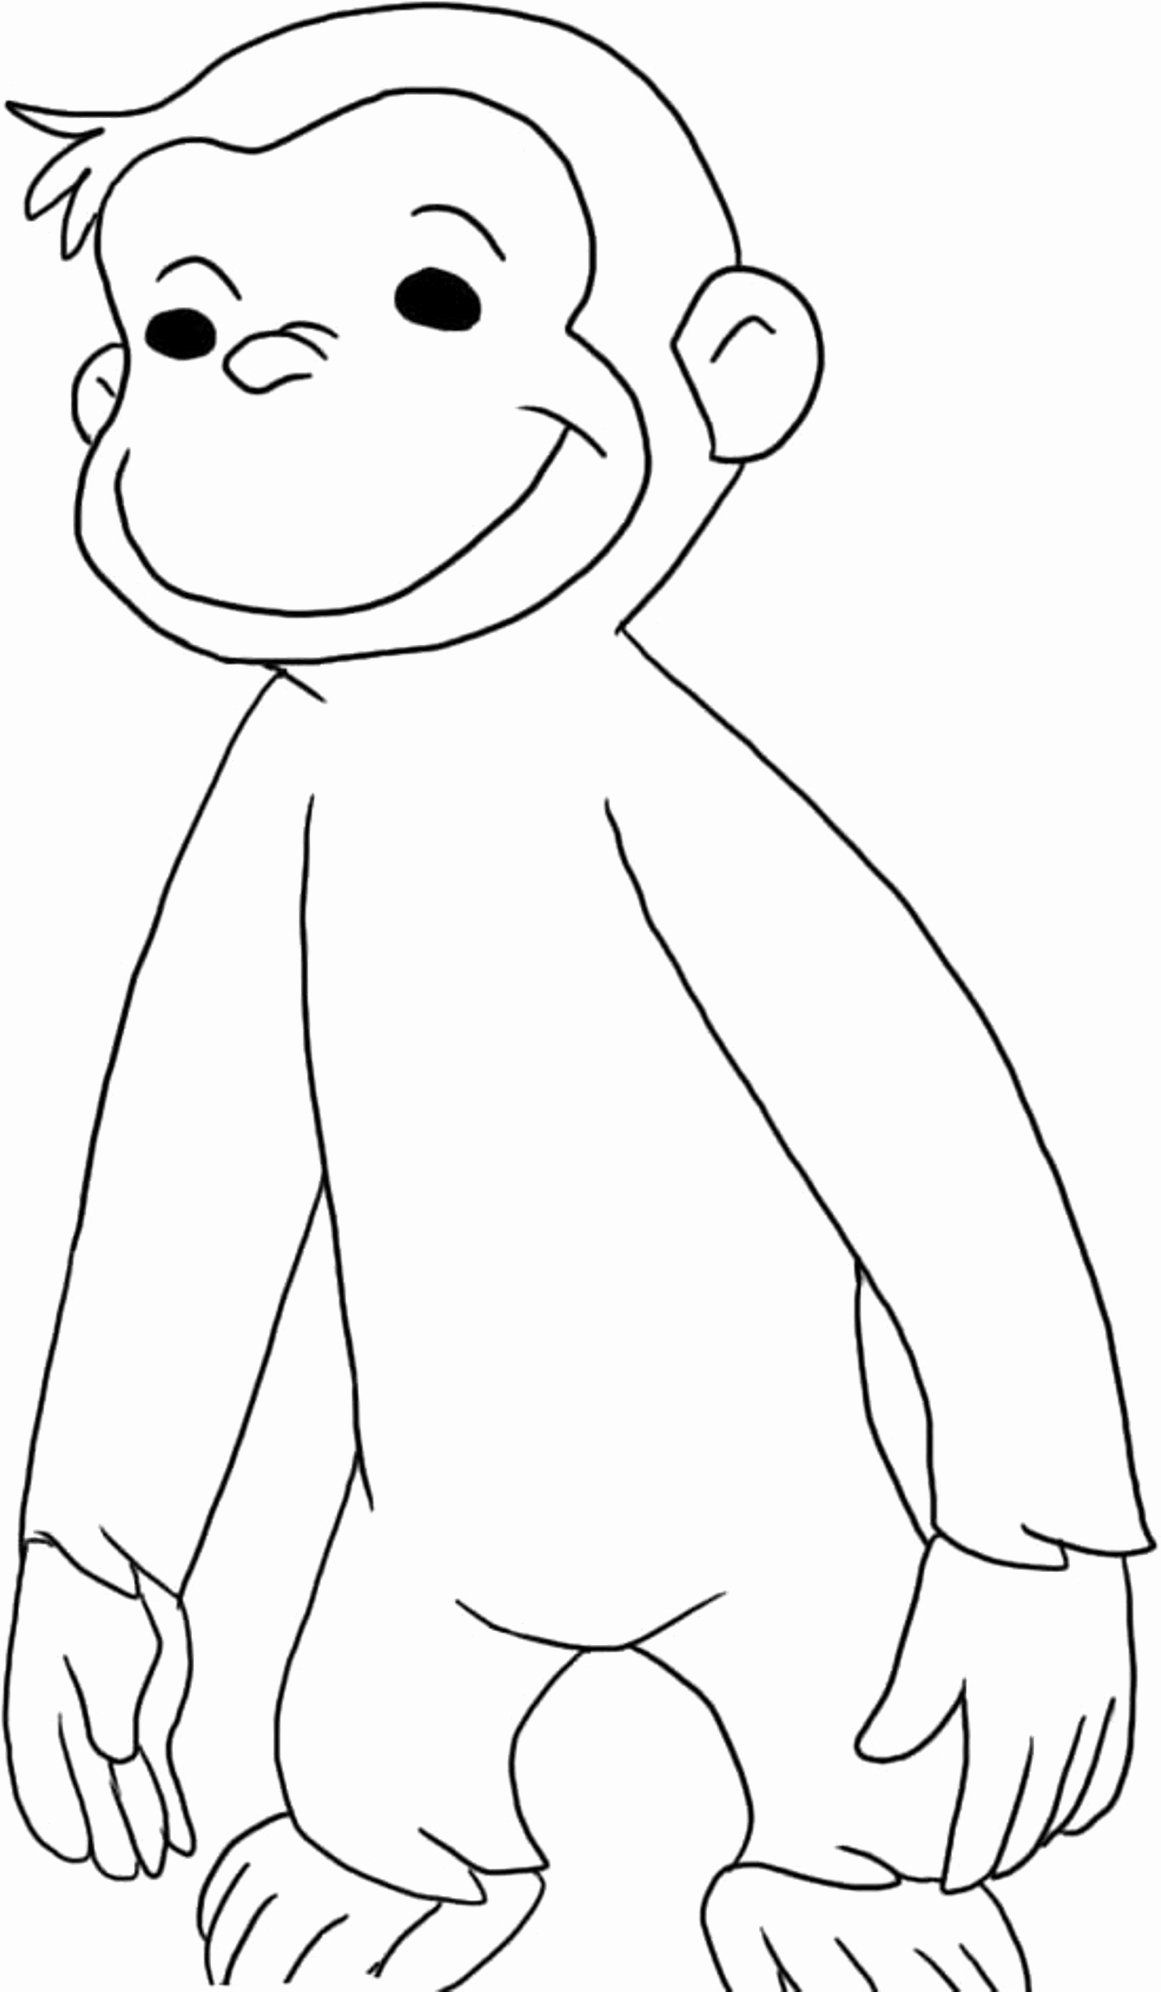 george the monkey coloring pages 24 curious george coloring book in 2020 curious george the pages coloring george monkey